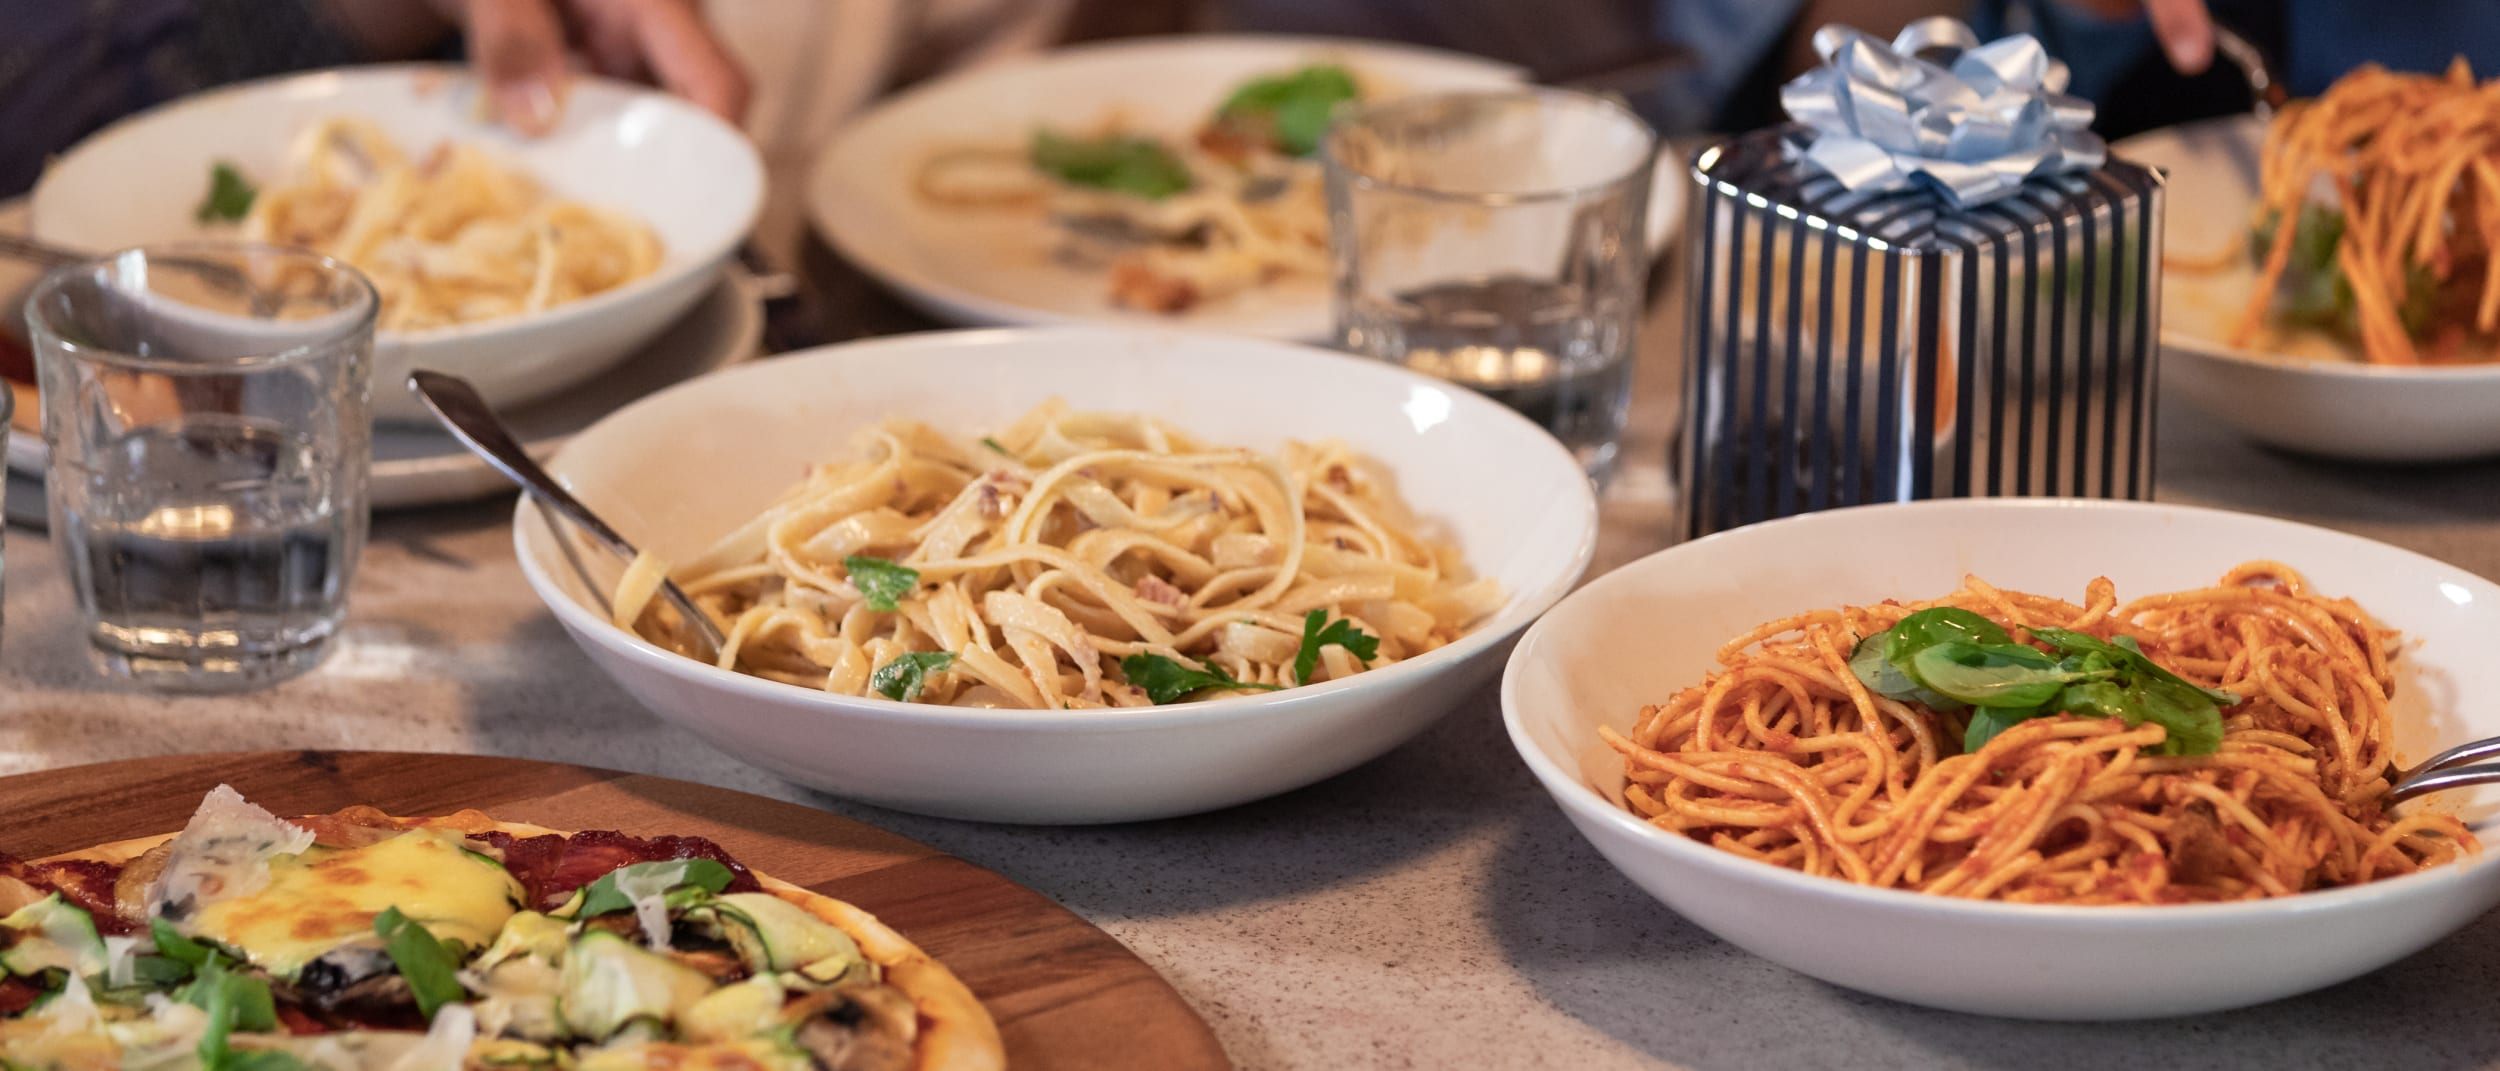 Tagliatelle or calzone? We decode your favourite Italian dishes